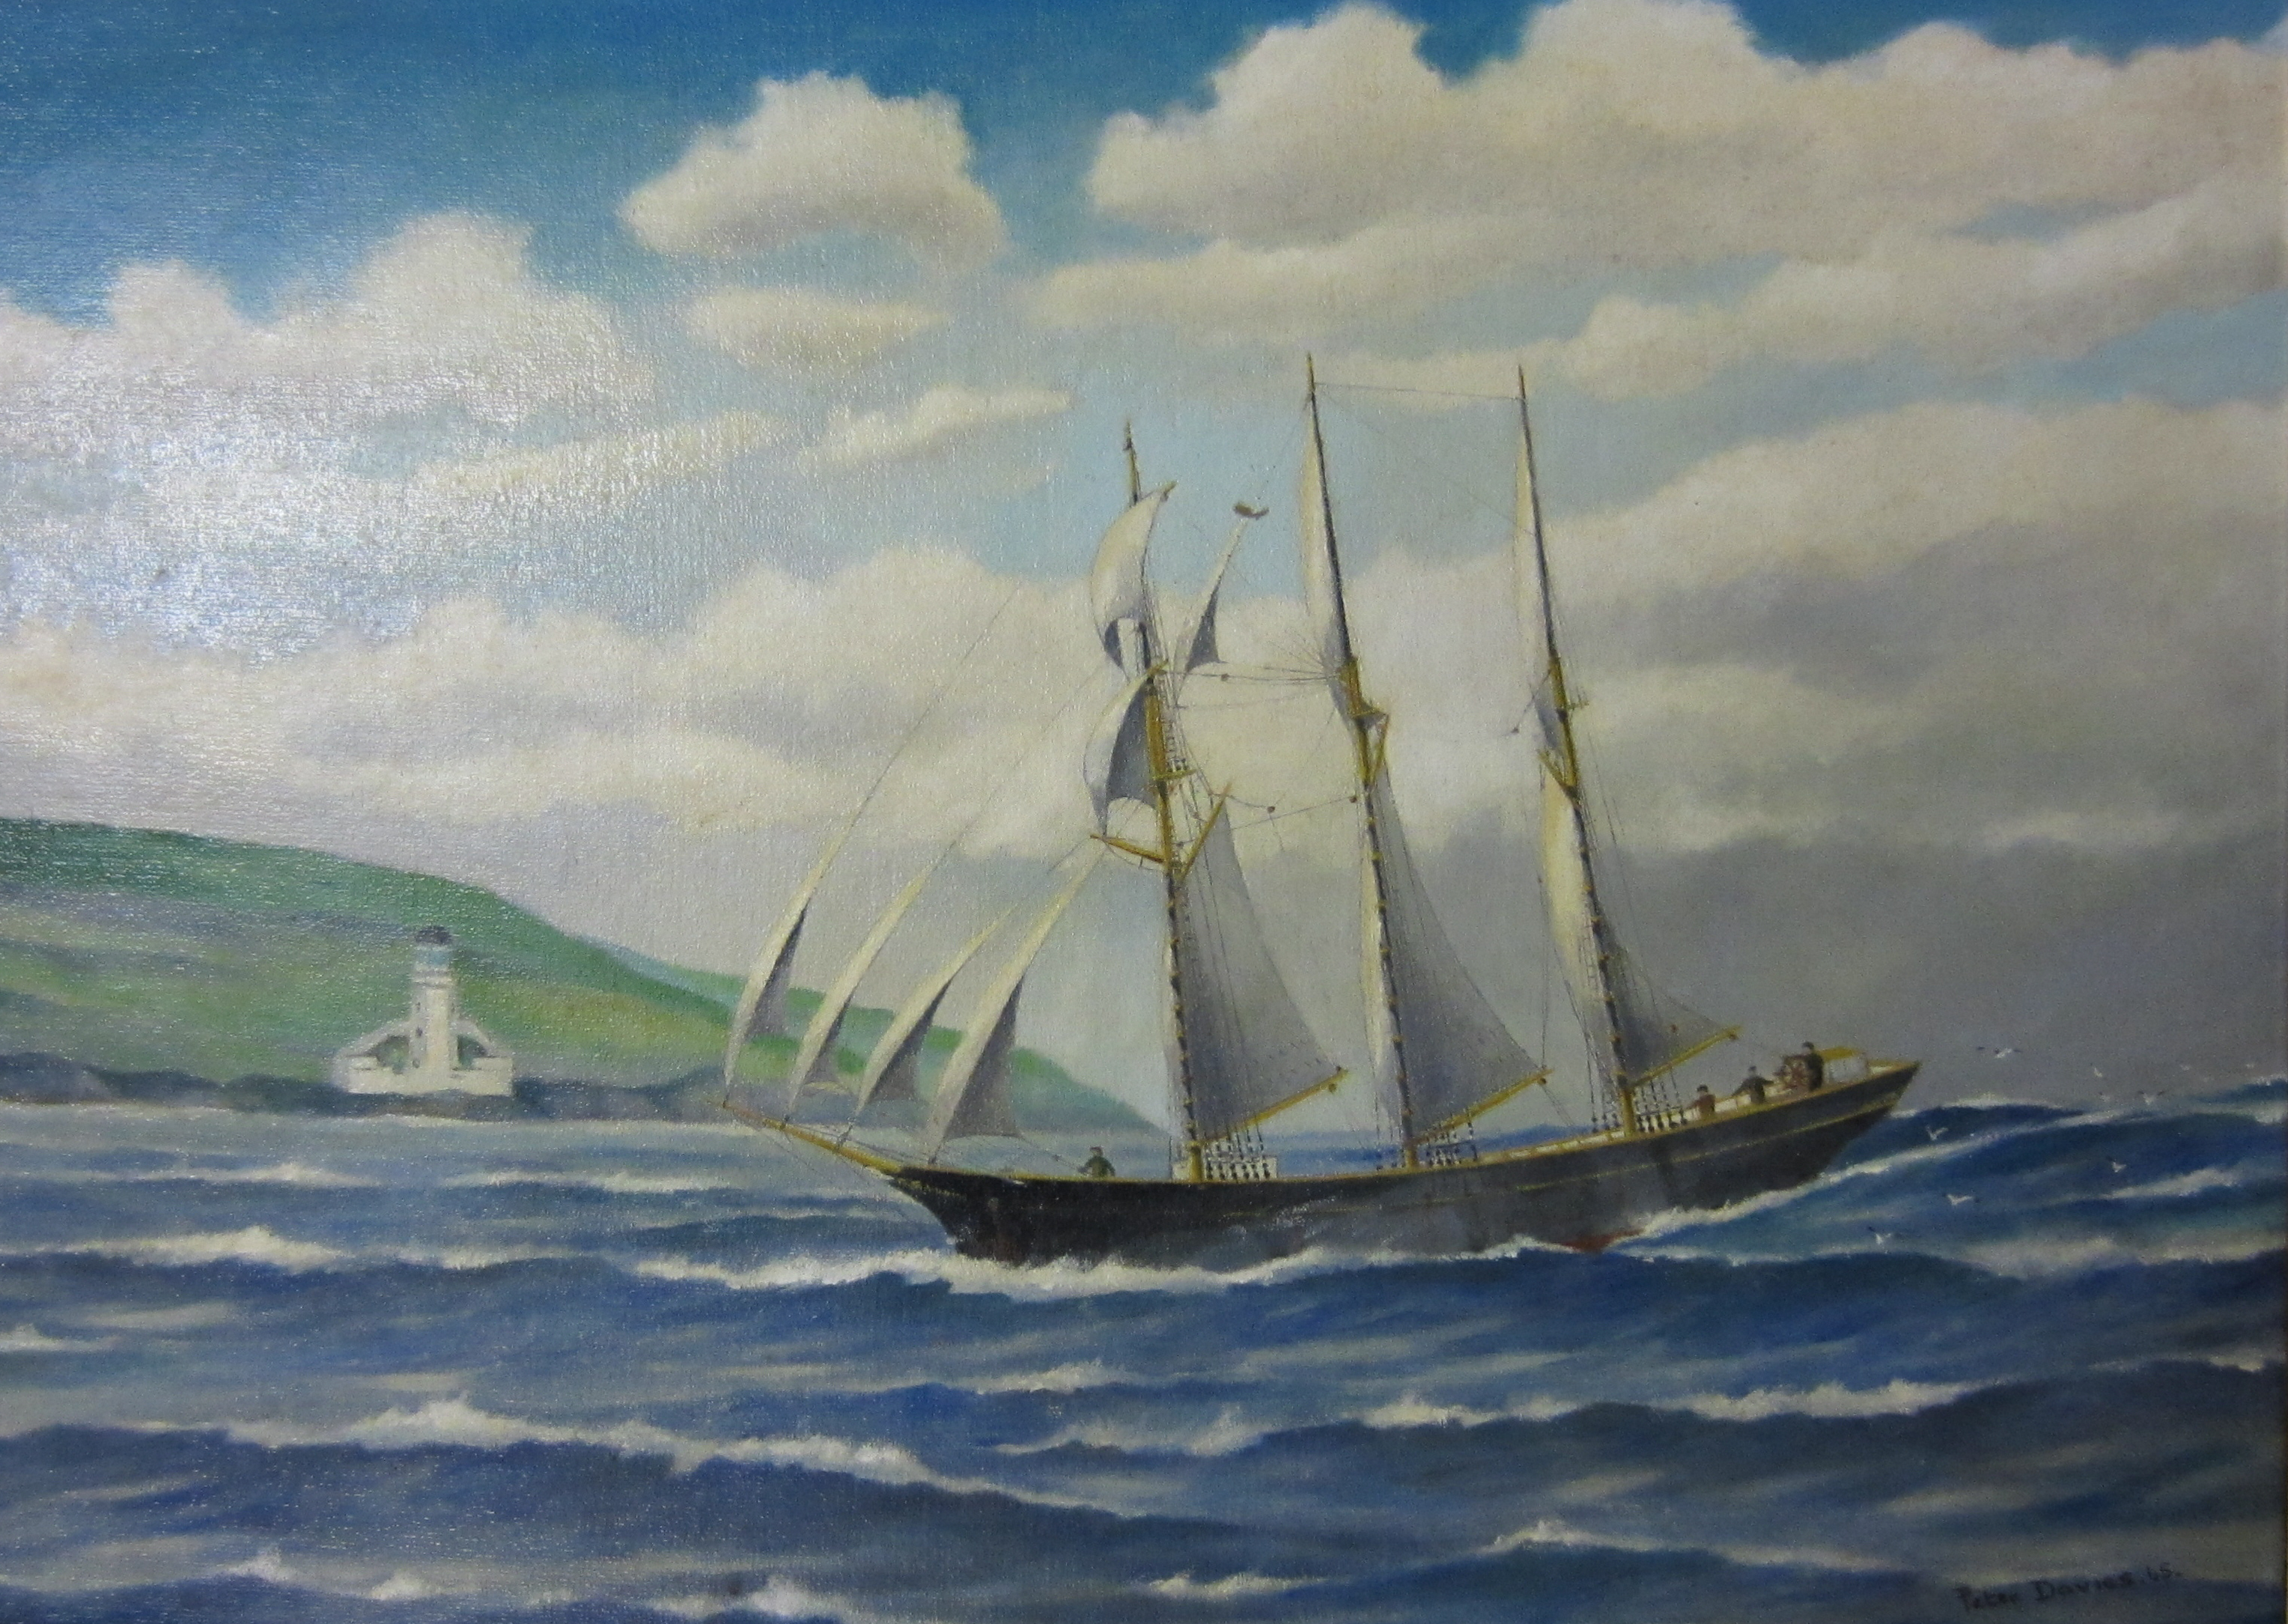 The Trevellas, a 3-masted schooner launched at Trevaunance Cove in 1876